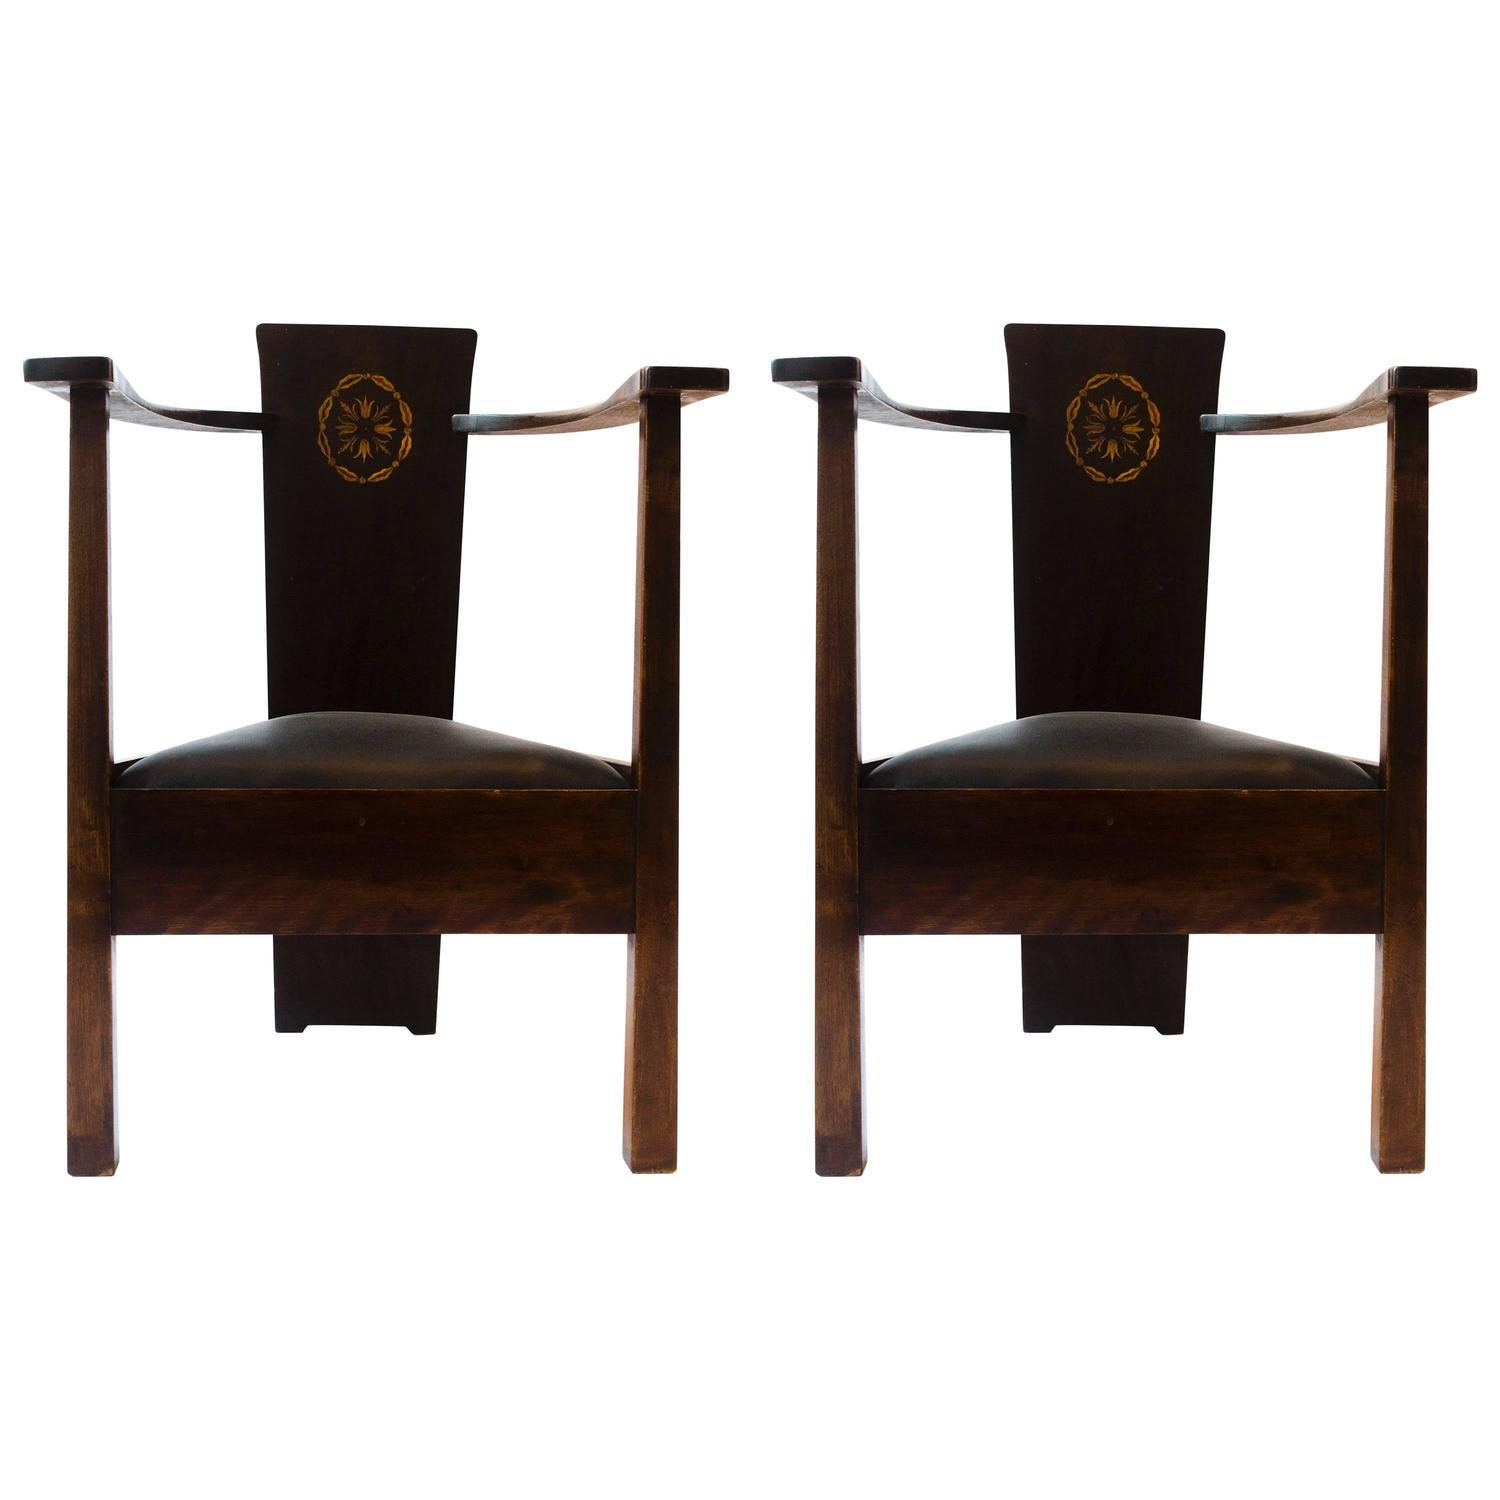 Baillie 3 Piece Dining Sets Regarding Best And Newest Mackay Hugh Baillie Scott Furniture – 6 For Sale At 1Stdibs (View 16 of 20)